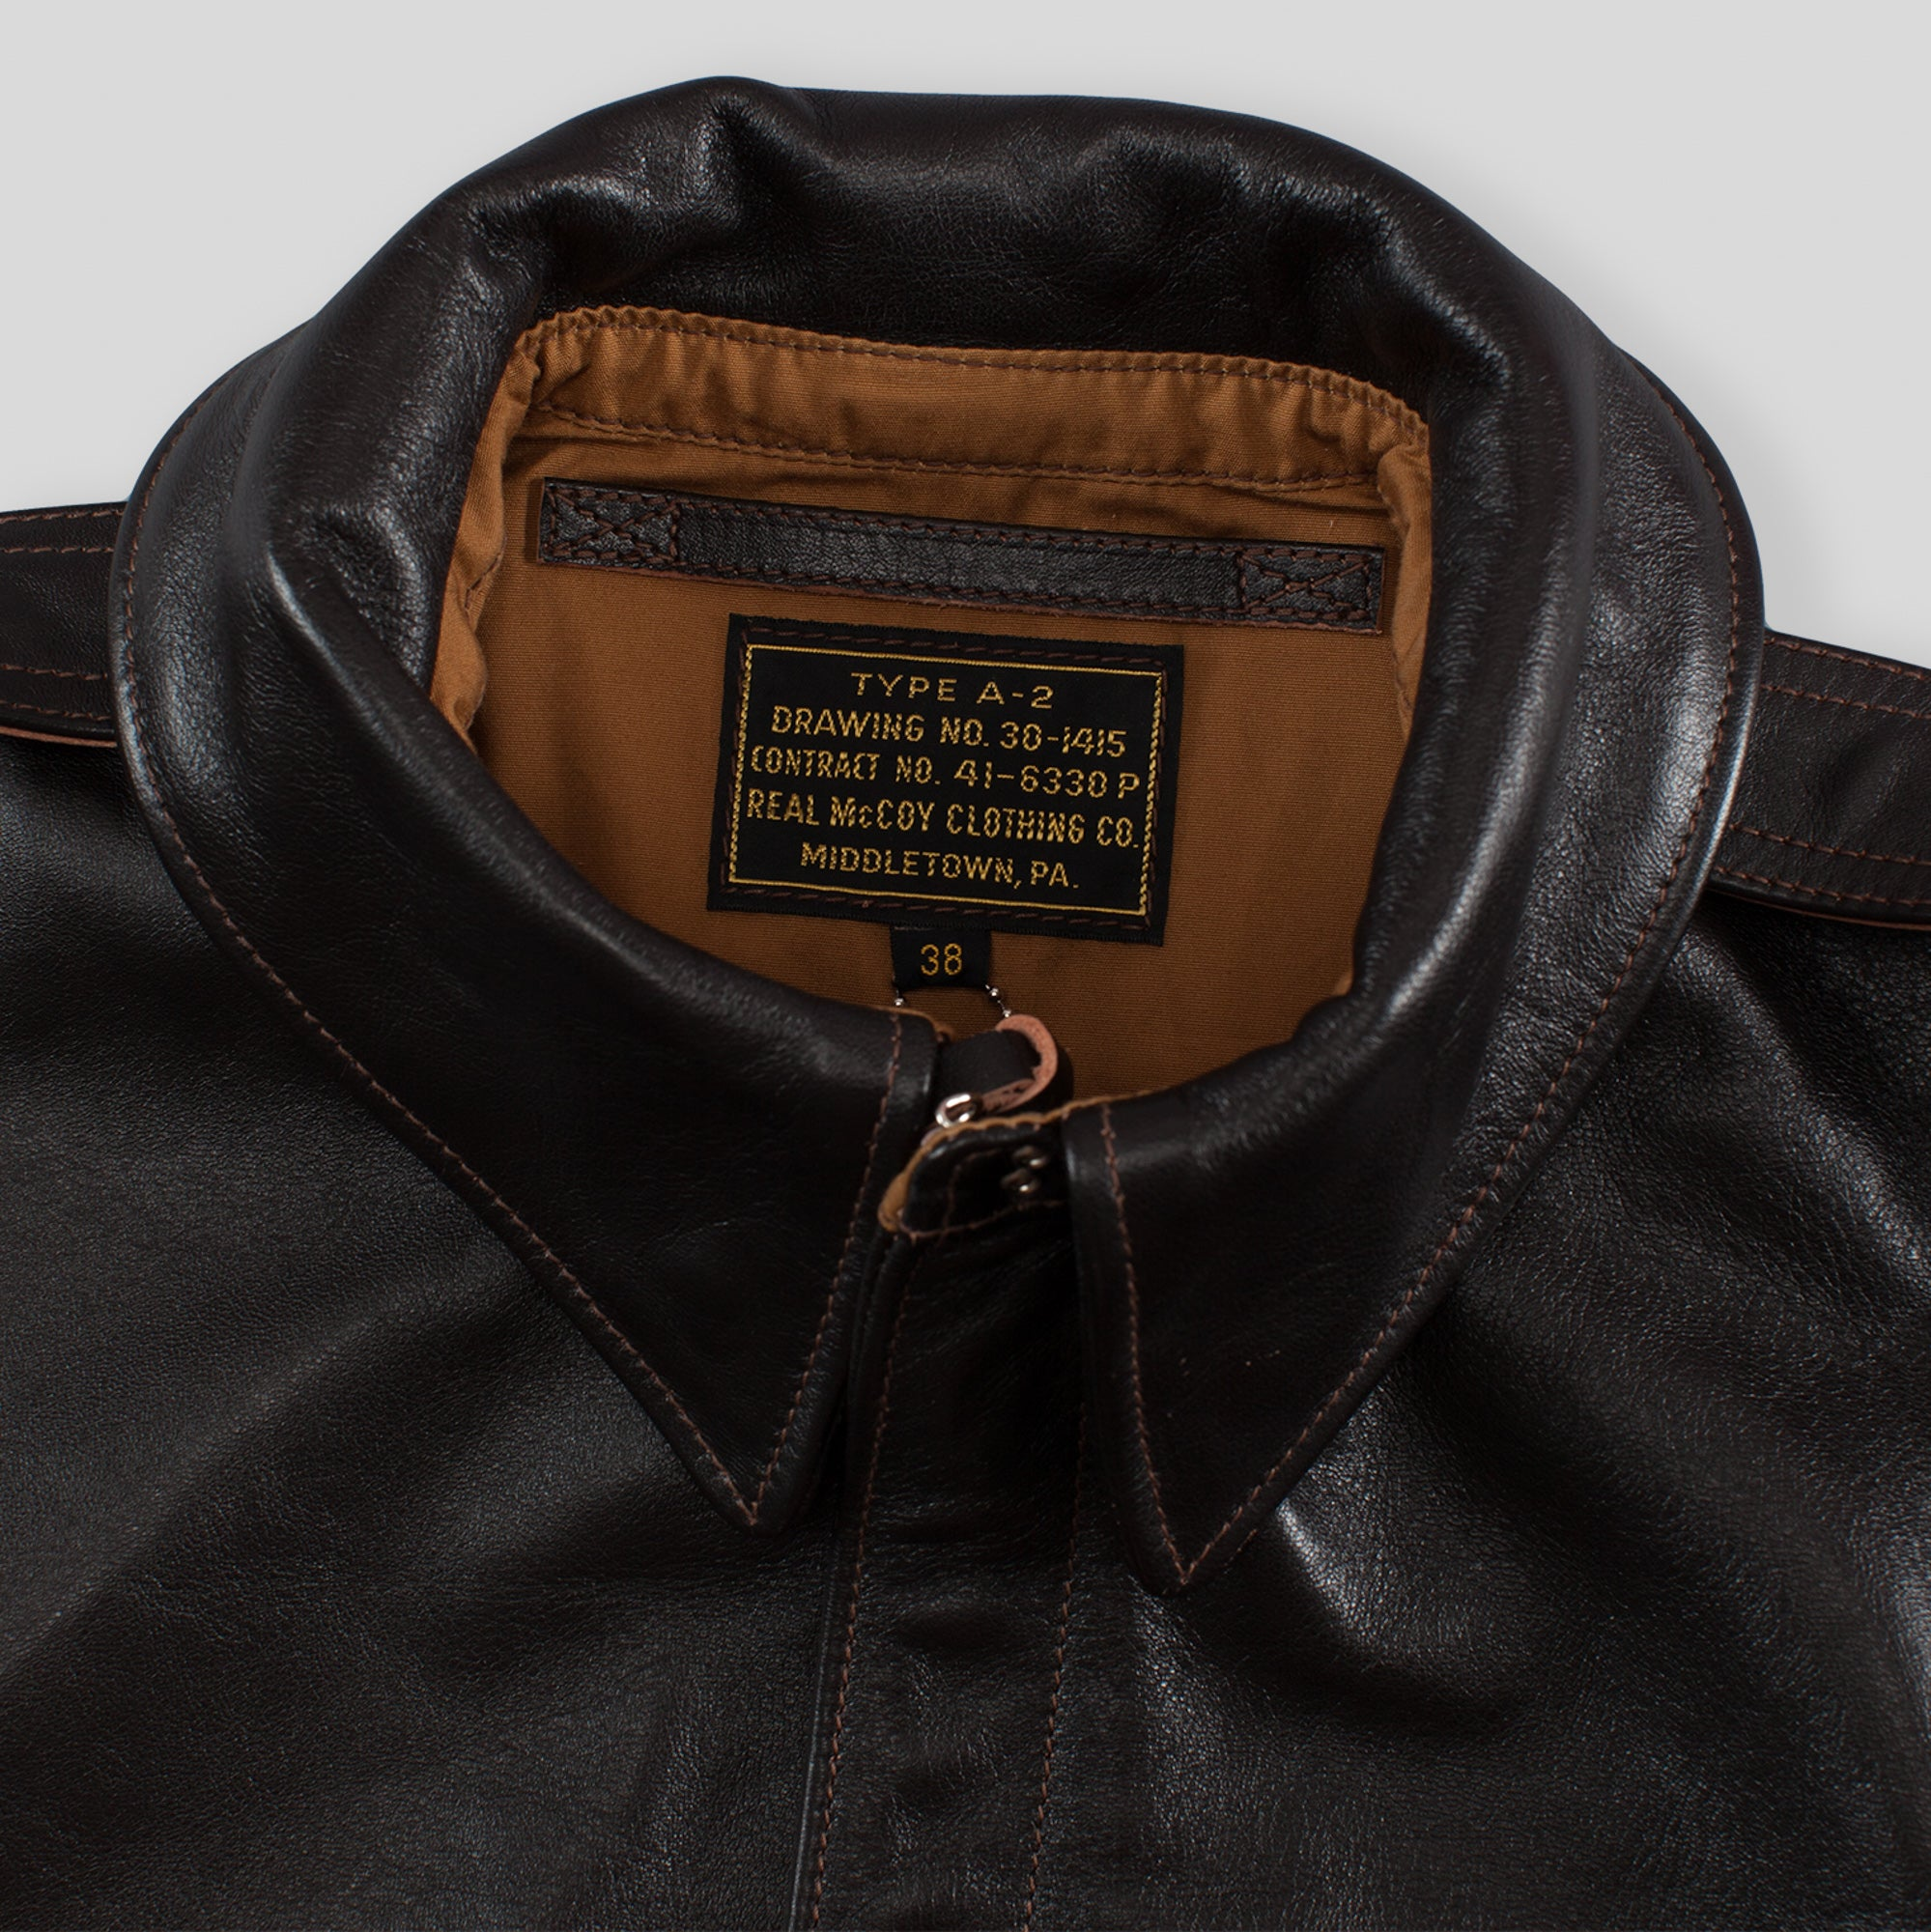 4027d86f3 The Real McCoy's Type A-2 Leather Jacket - Seal Brown MJ18101